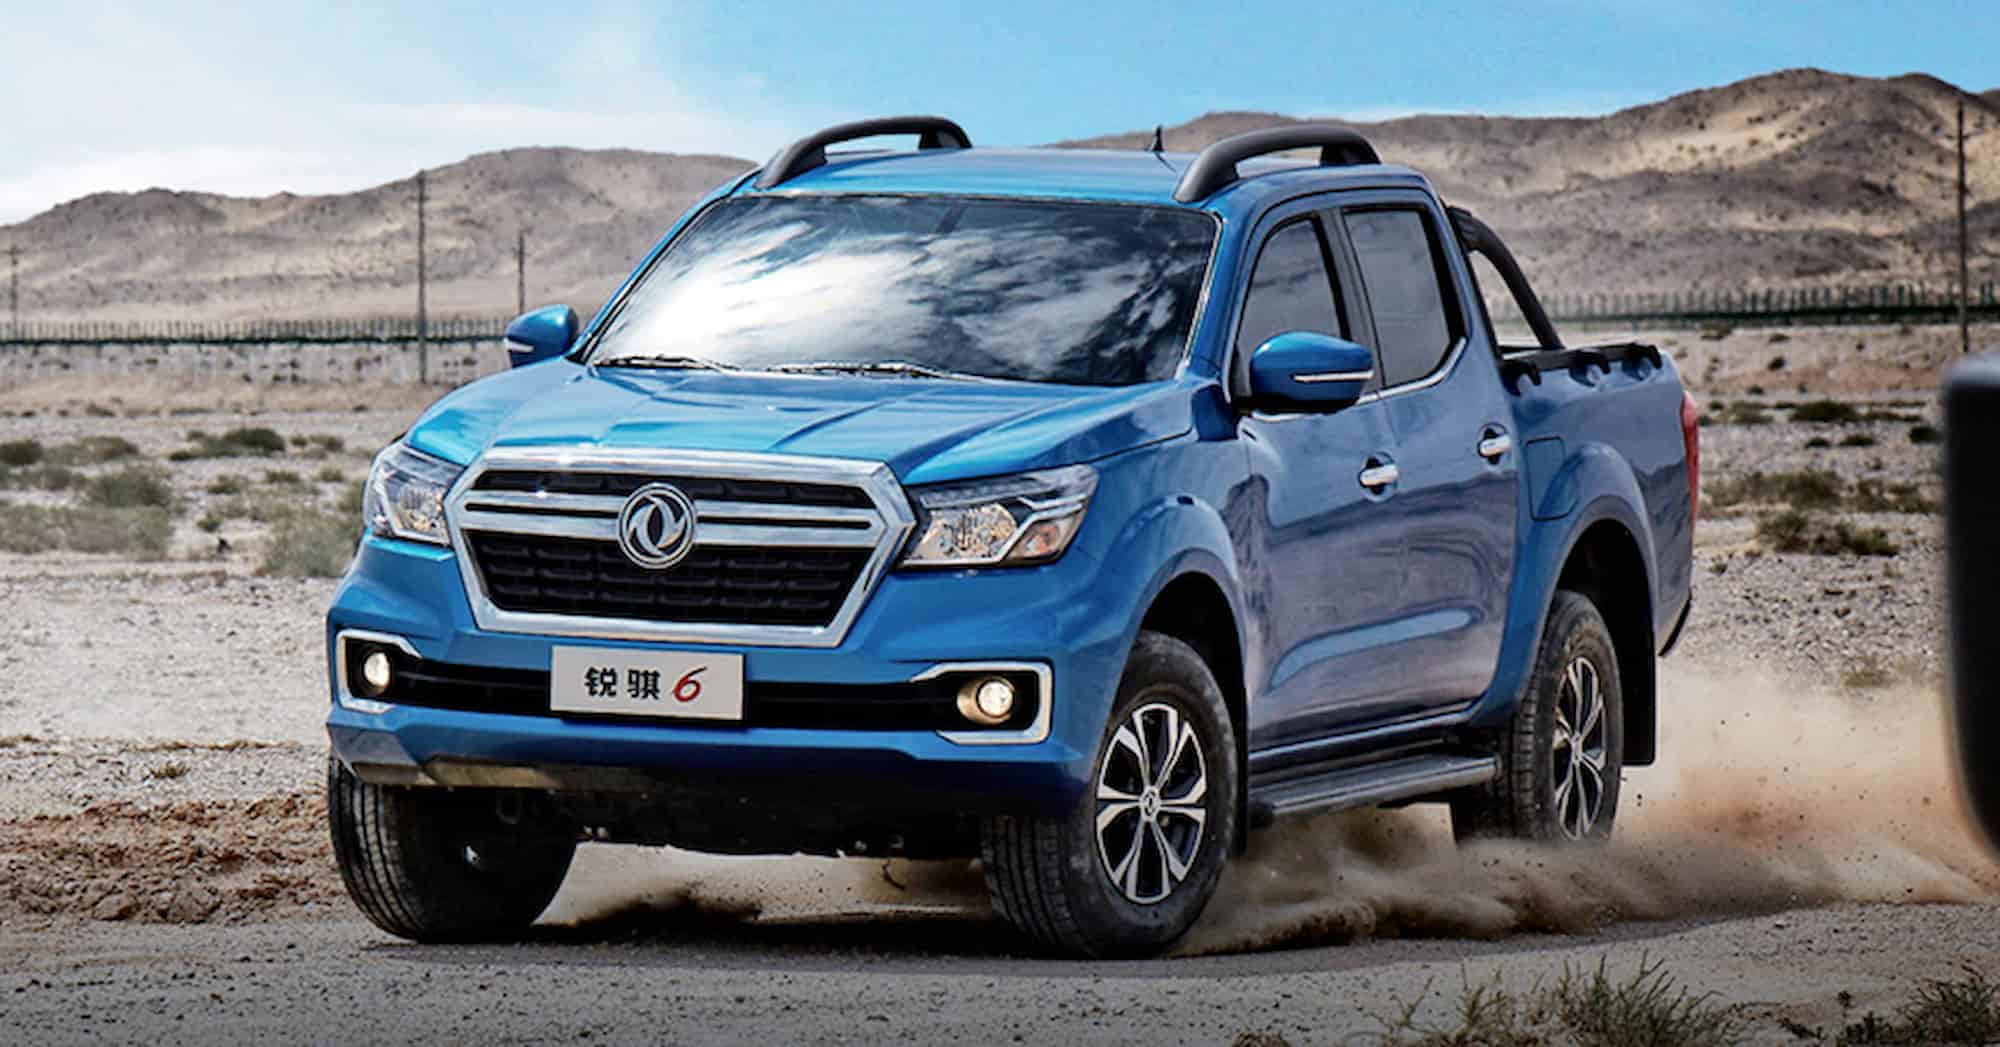 dongfeng rich6 5